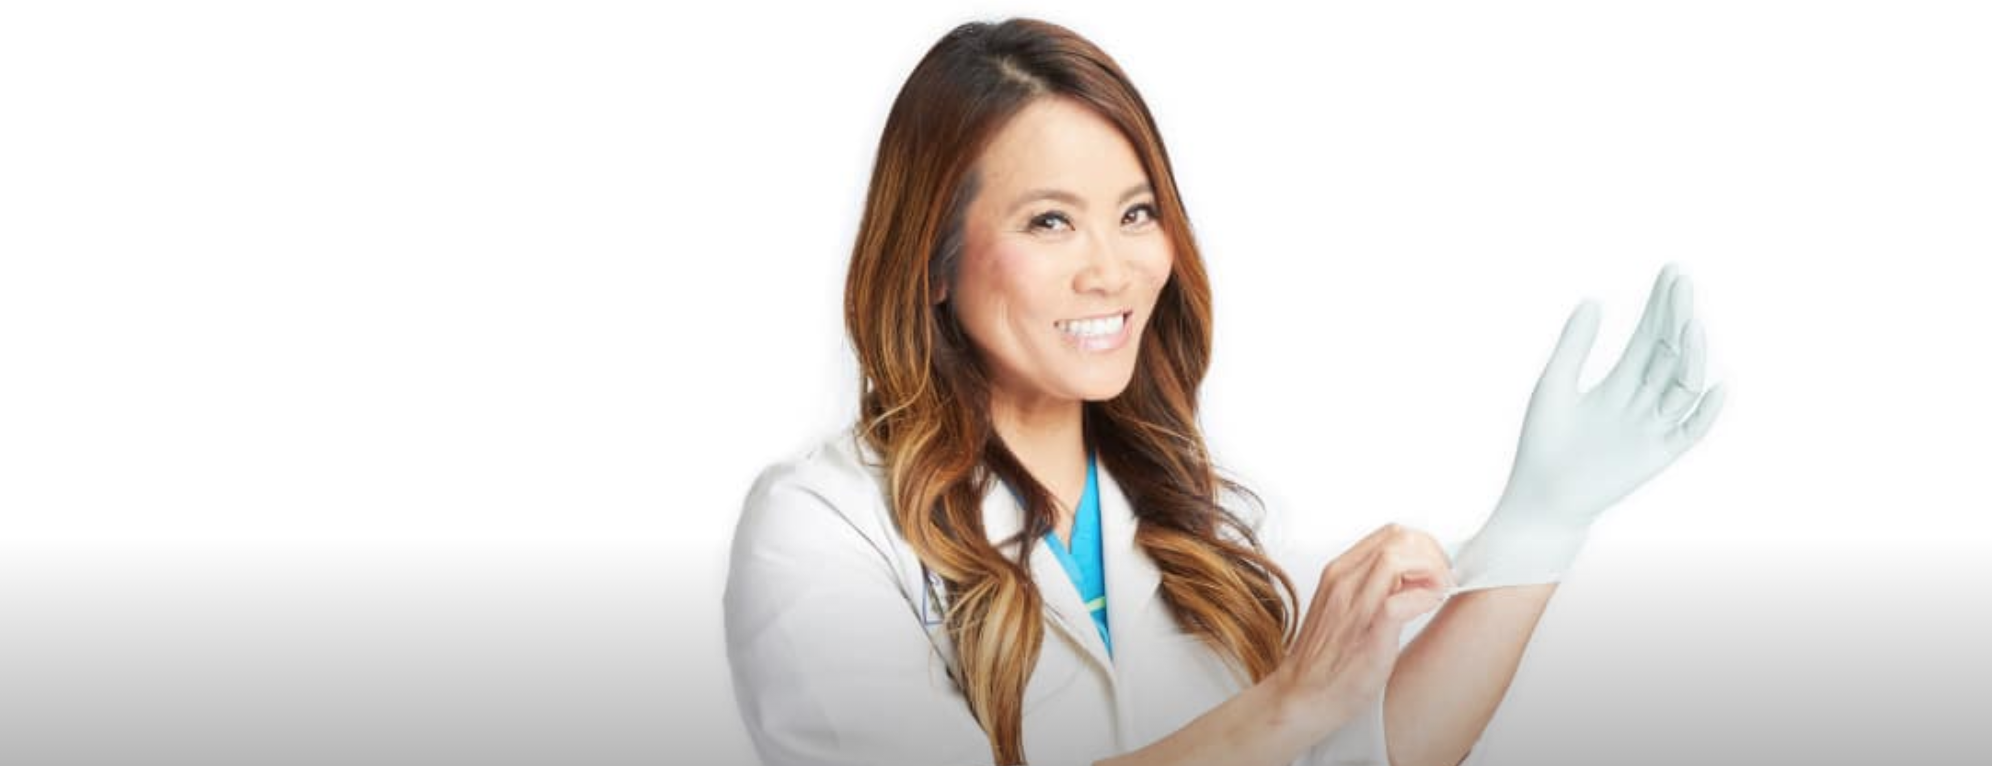 Is Dr Pimple Popper a real person?